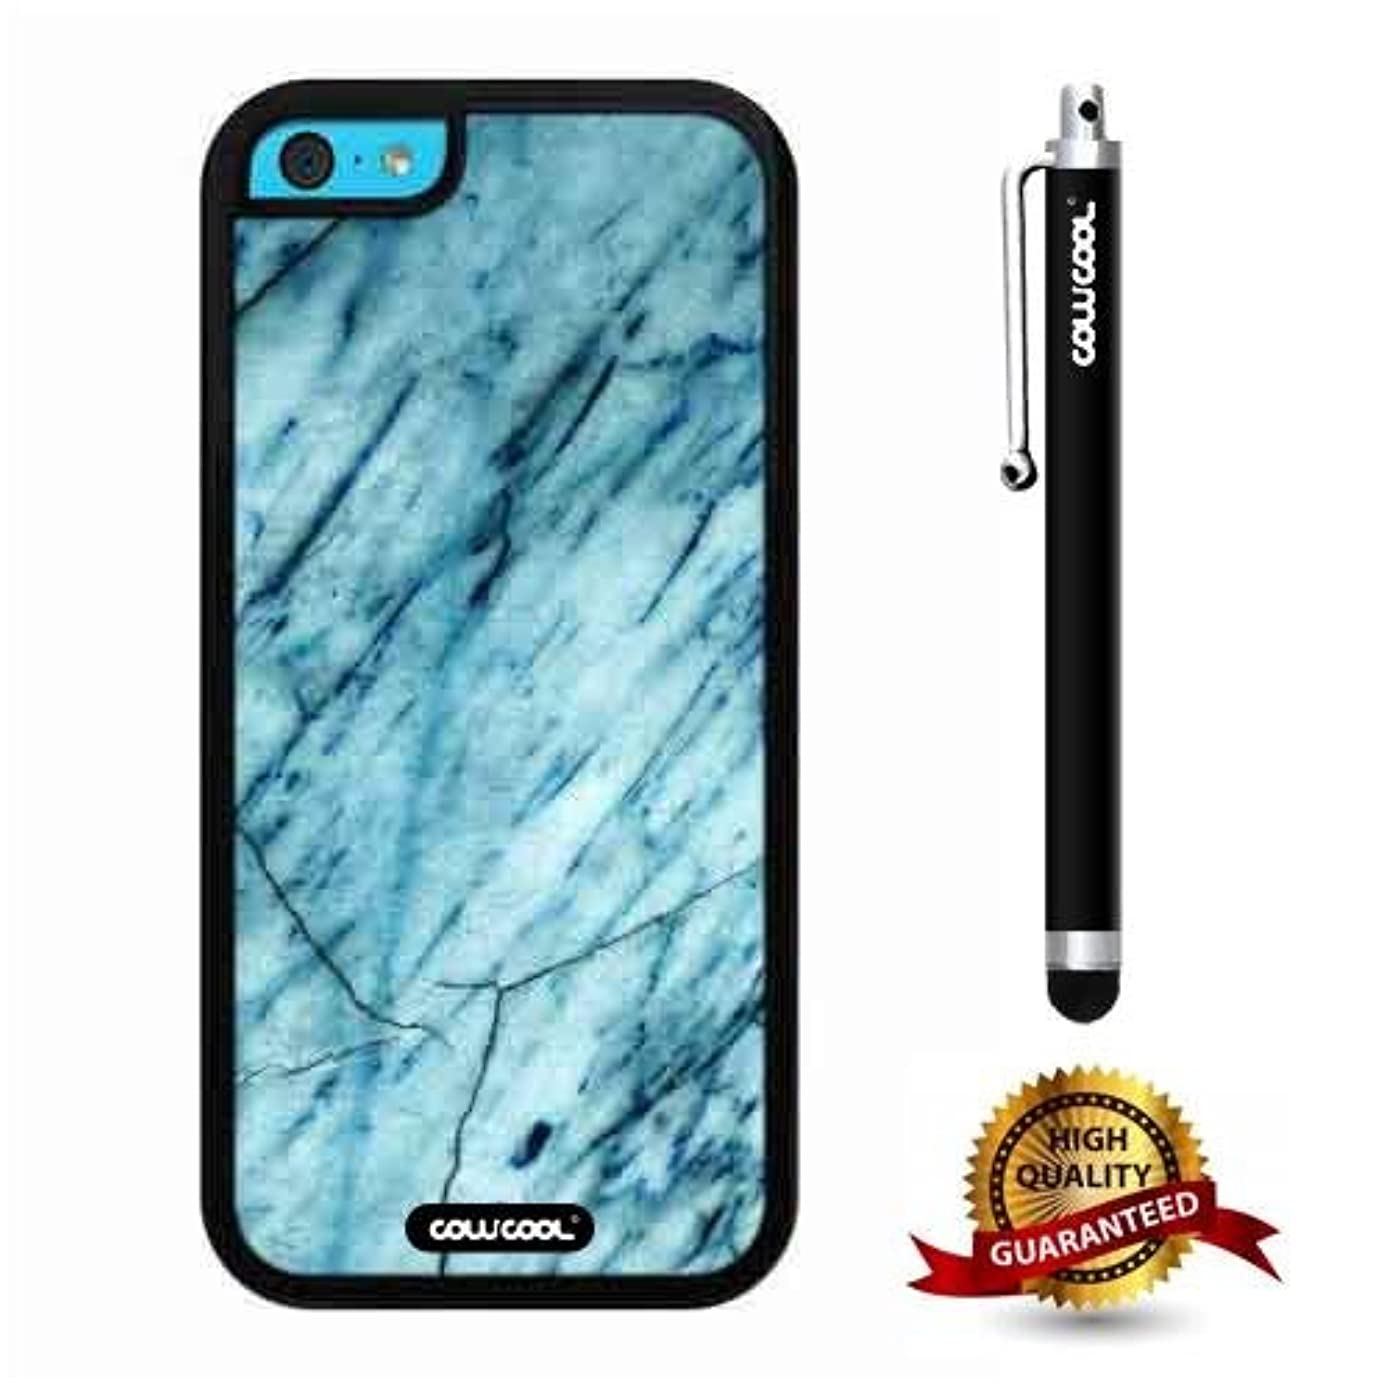 iphone 5C Case, Marble Pattern Case, Cowcool Ultra Thin Soft Silicone Case for Apple iphone 5C - Slash Grid Marble Texture